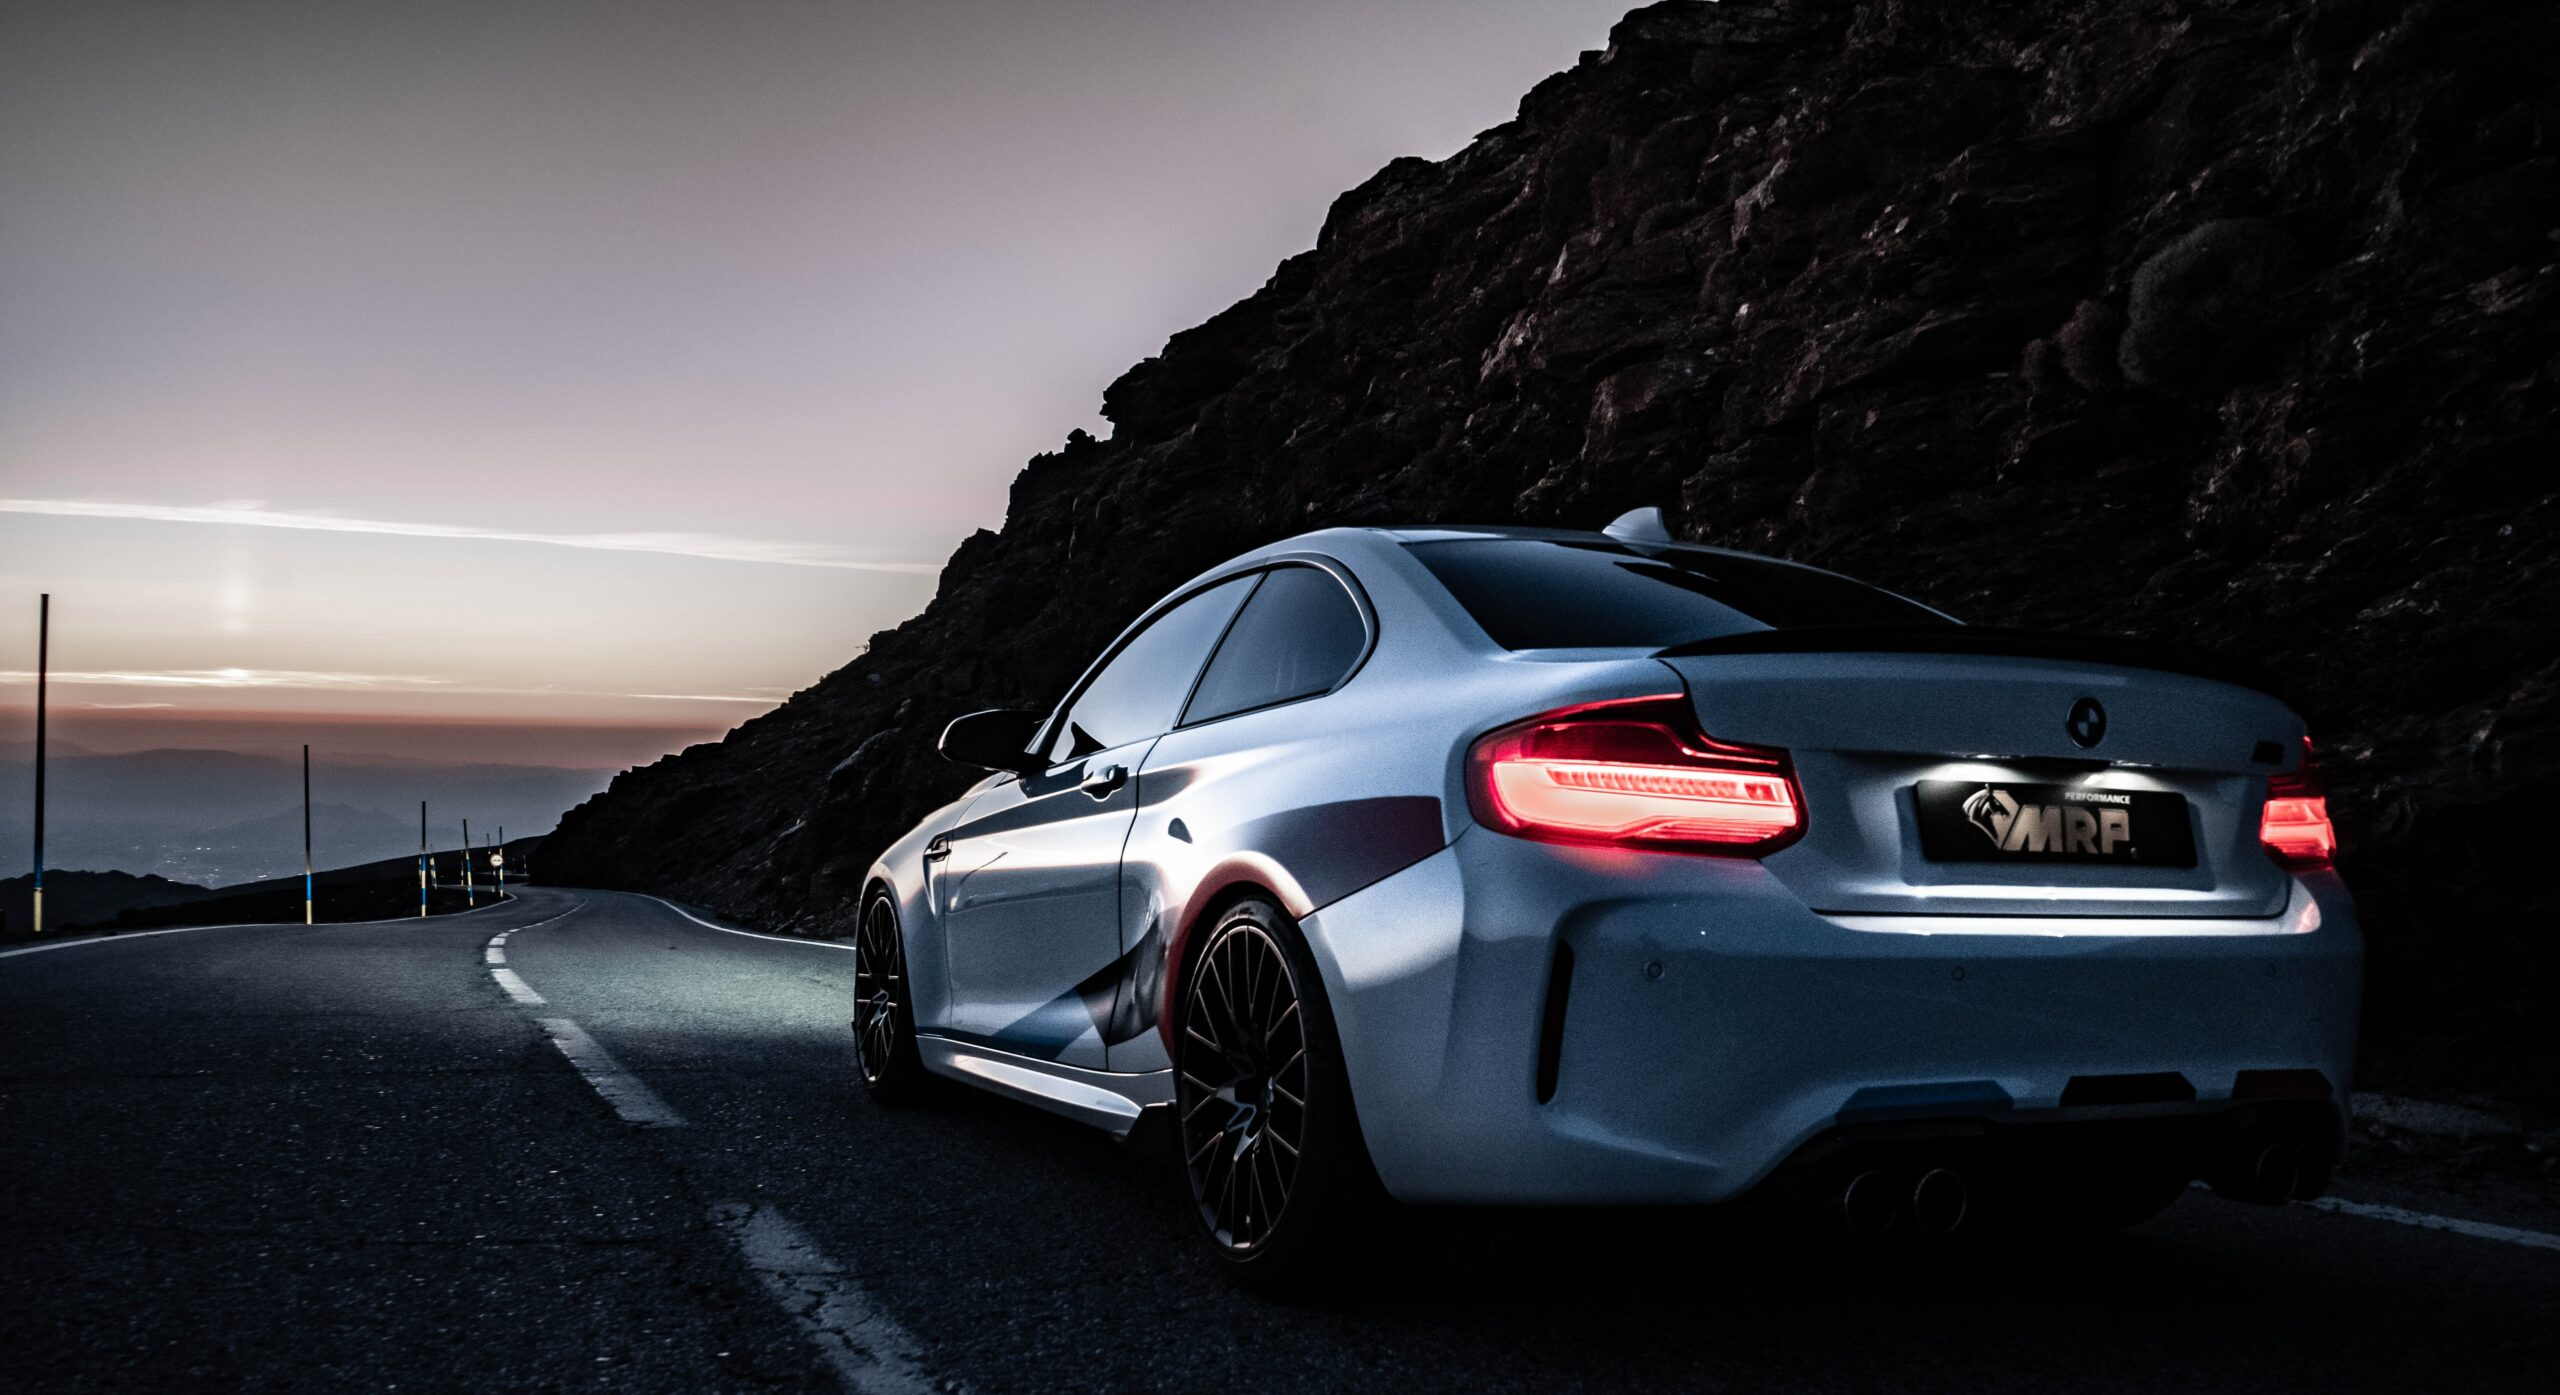 Capristo BMW M2 COMPETITION